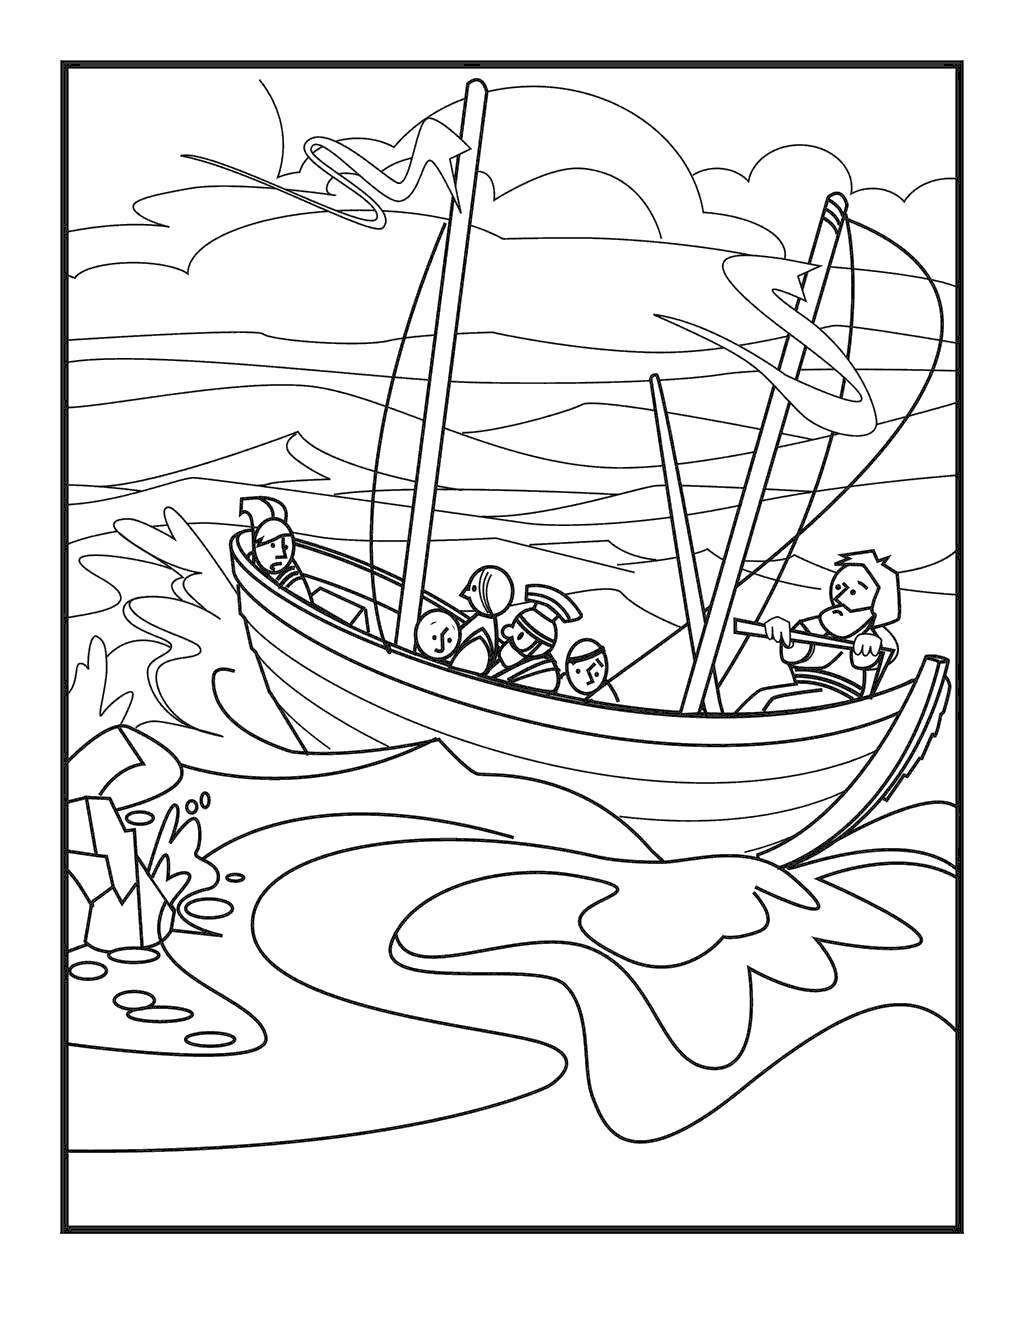 Jesus Calms The Storm Coloring Pages Avaboard Images